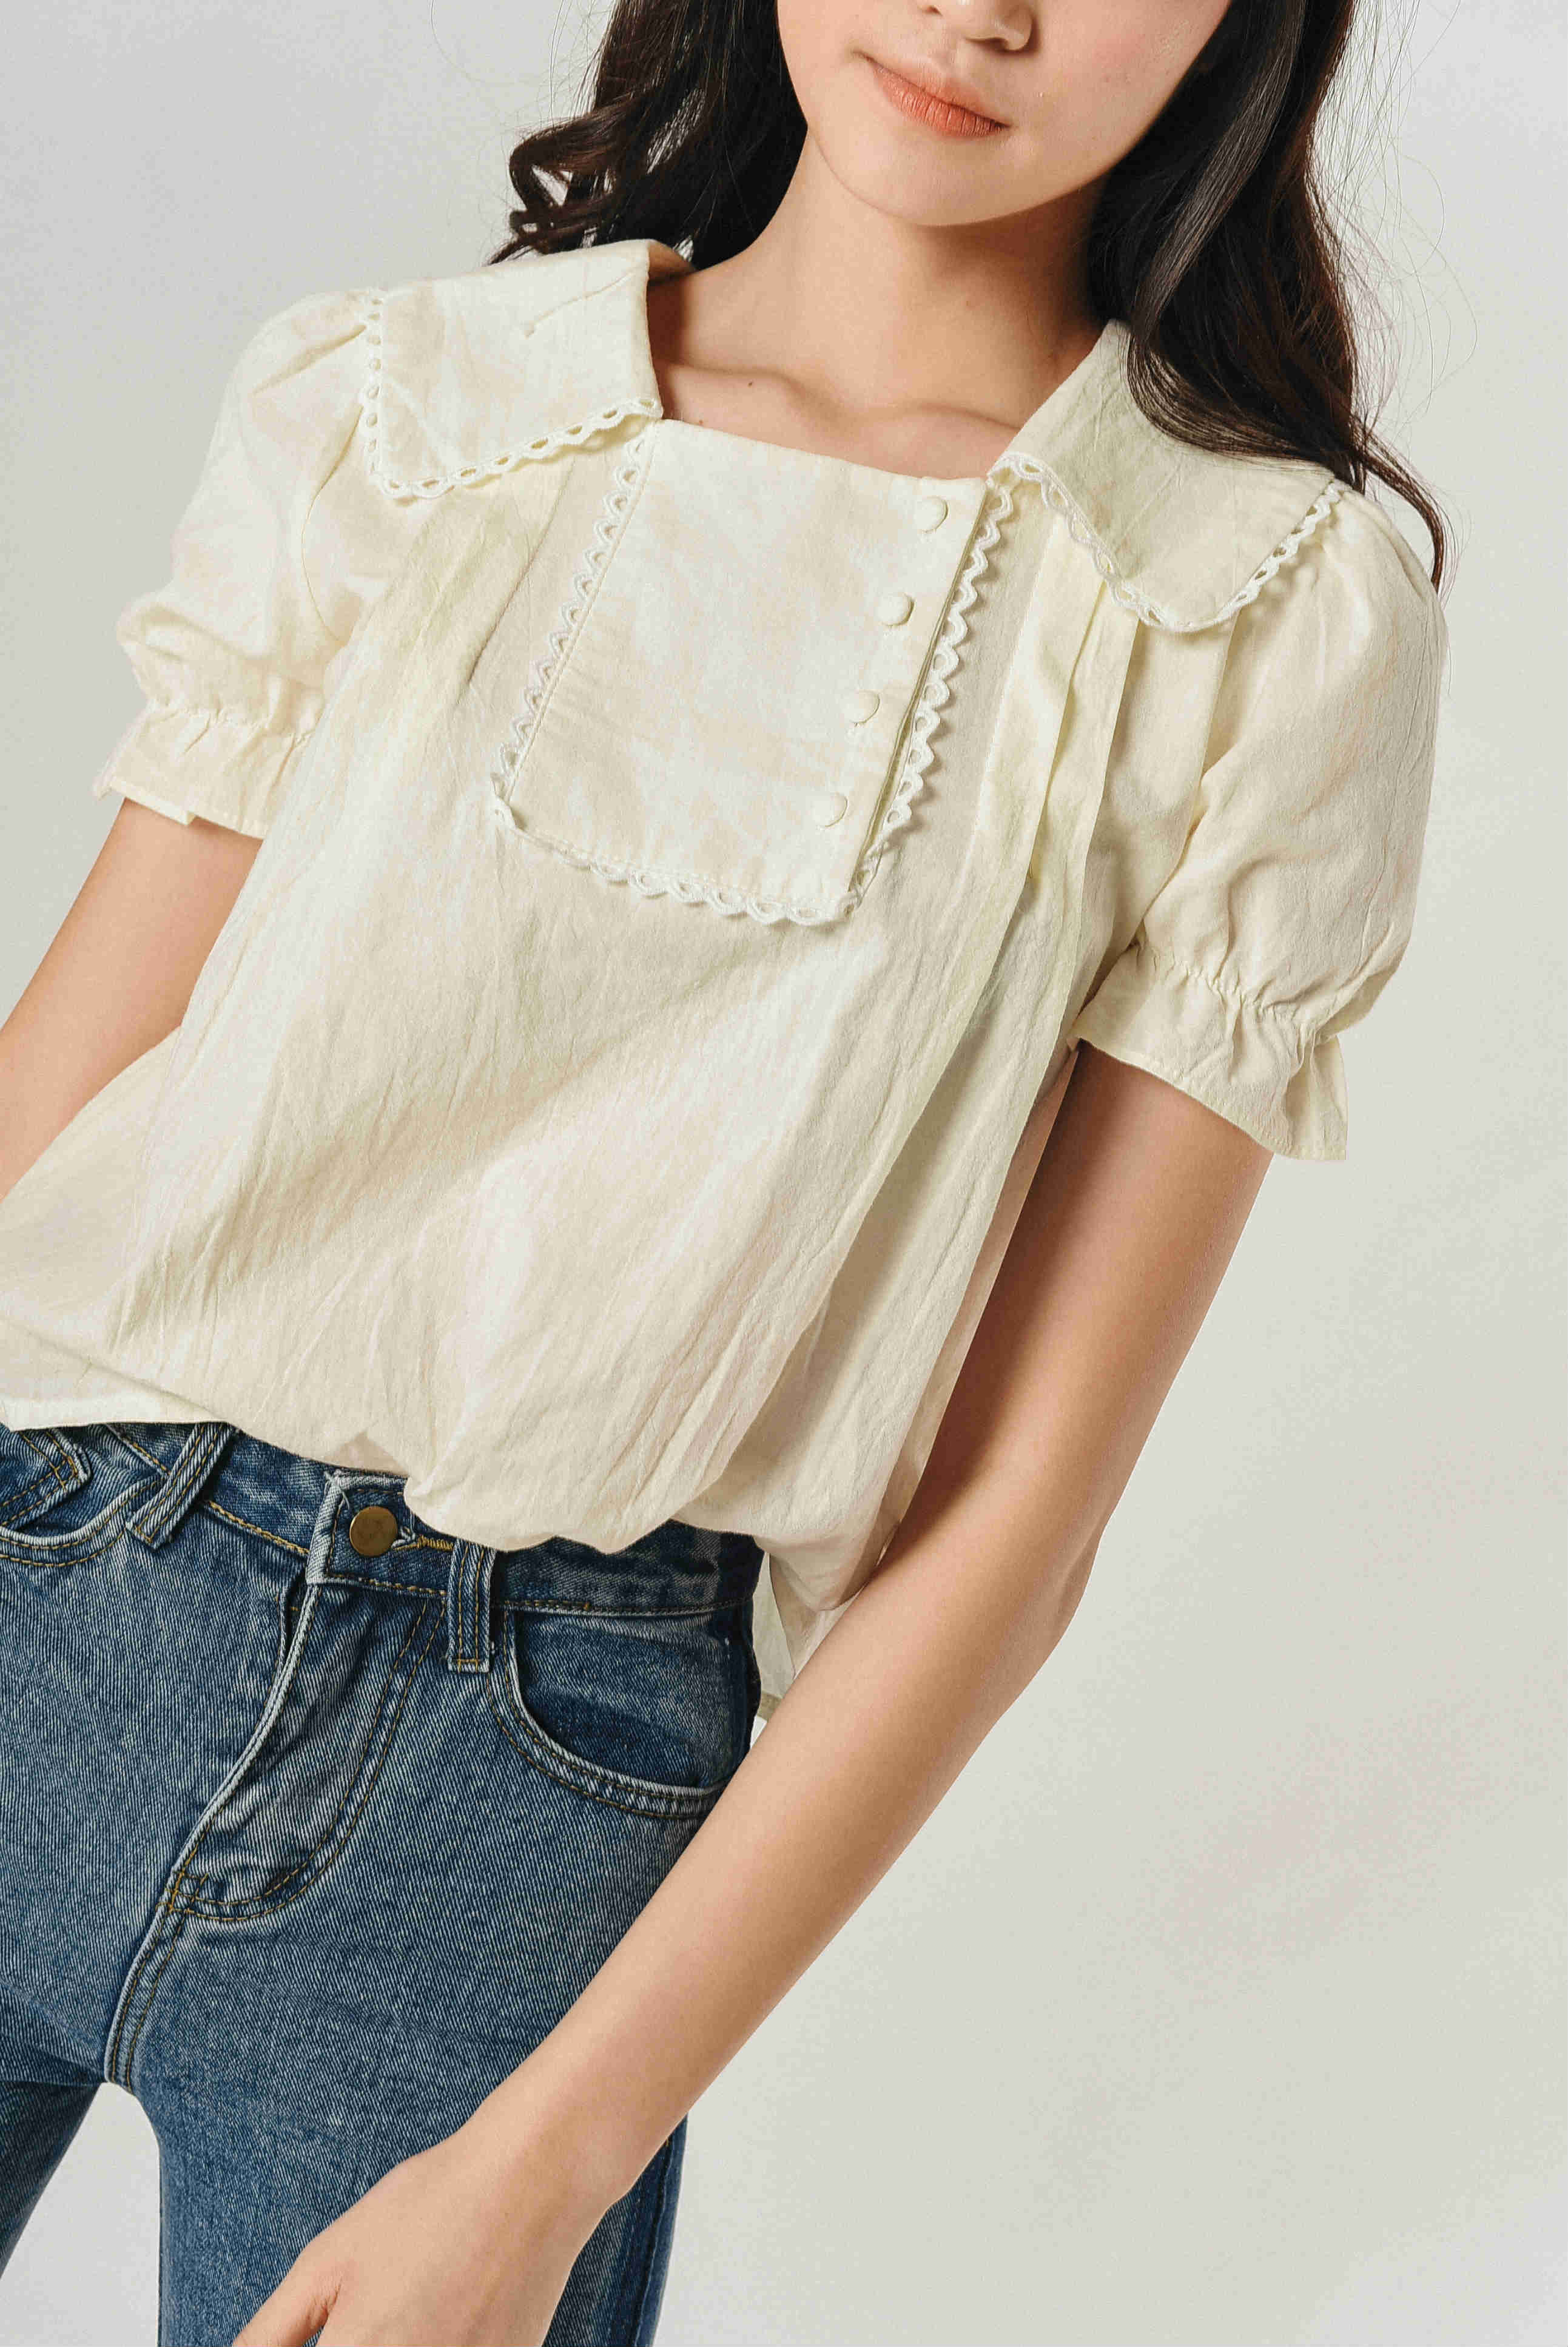 Hani Buttoned Top